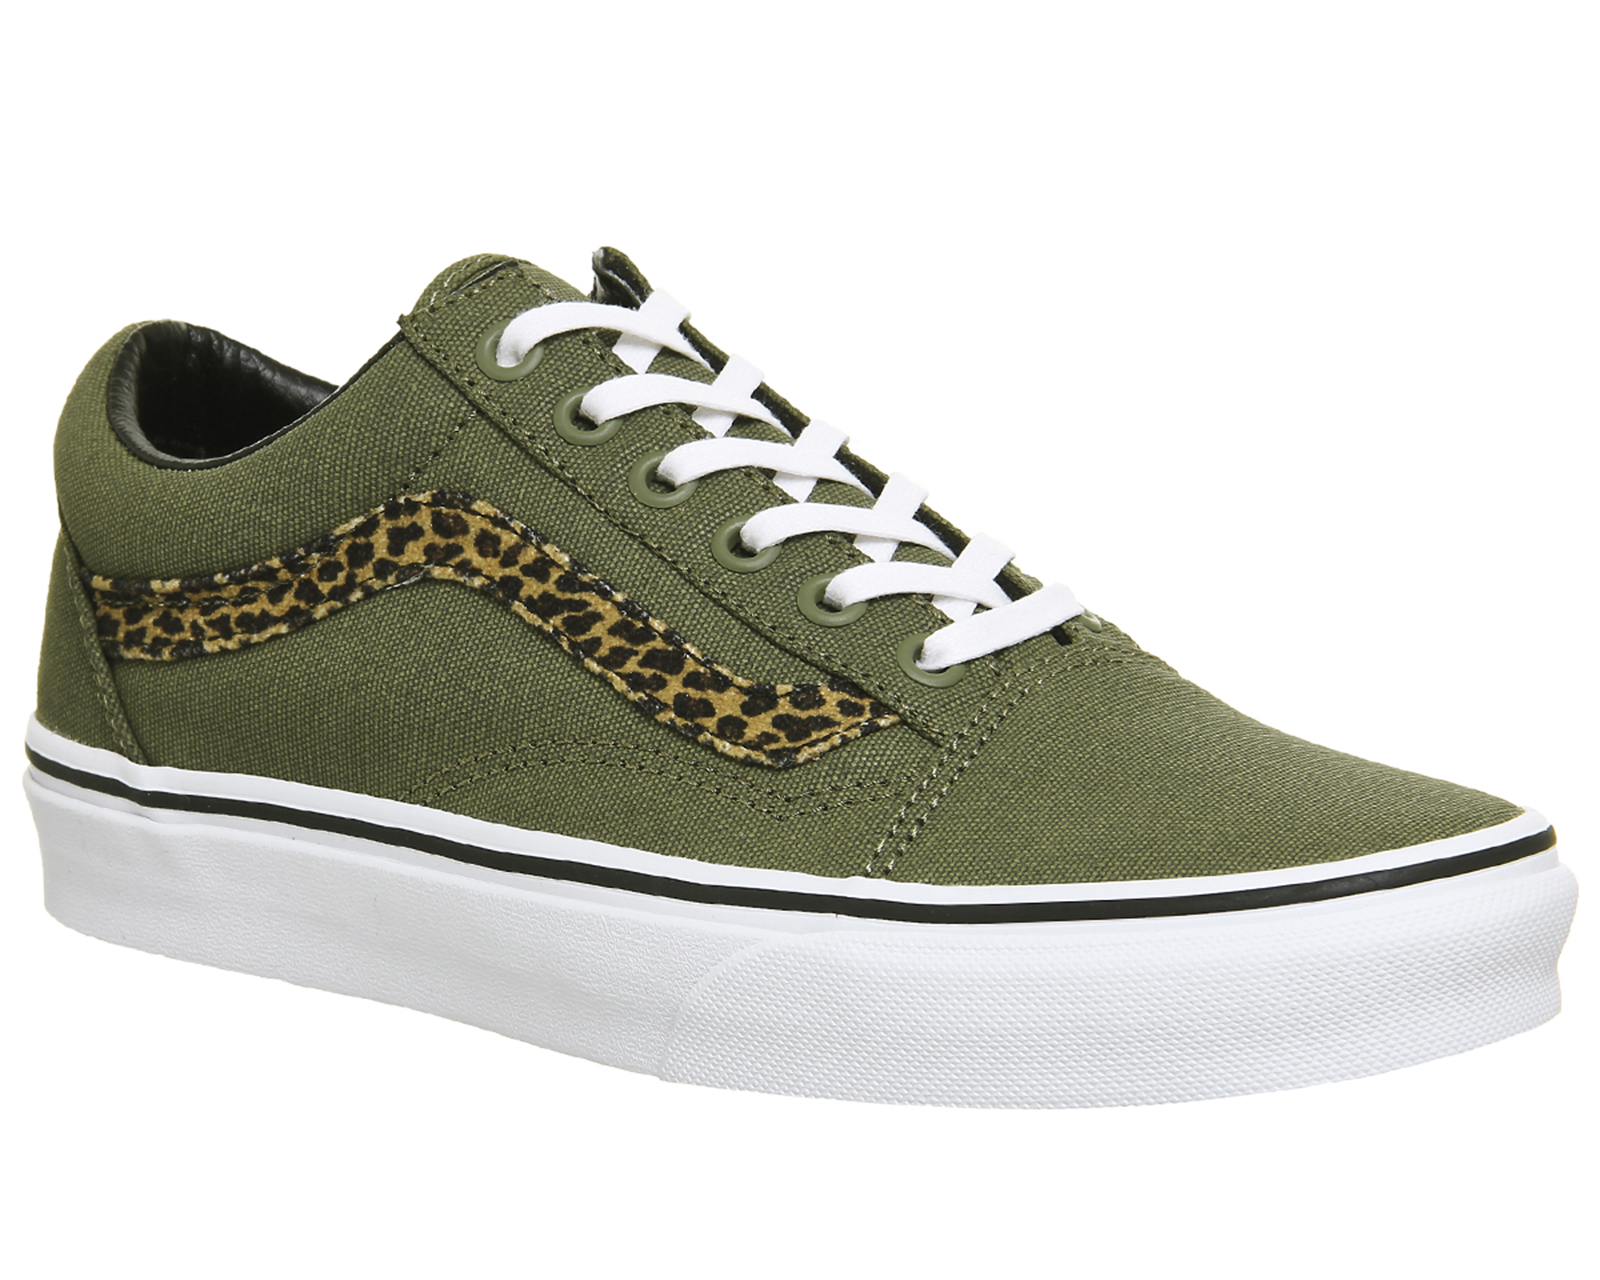 61ff645c740a37 Sentinel Womens Vans Old Skool Trainers MINI LEOPARD ARMY GREEN WHITE  Trainers Shoes